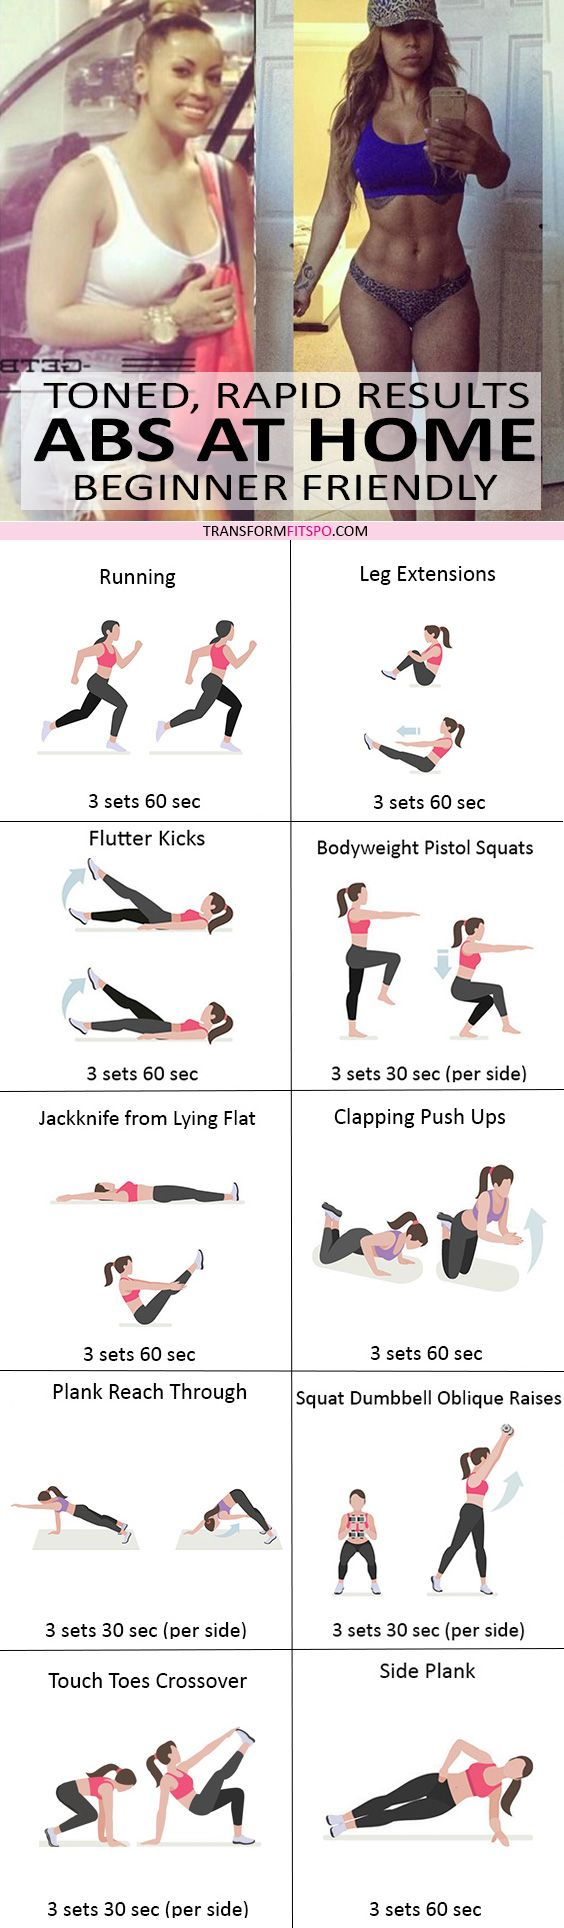 #womensworkout #workout #femalefitness Repin and share if this workout hard abs from home! Click the pin for the full workout.